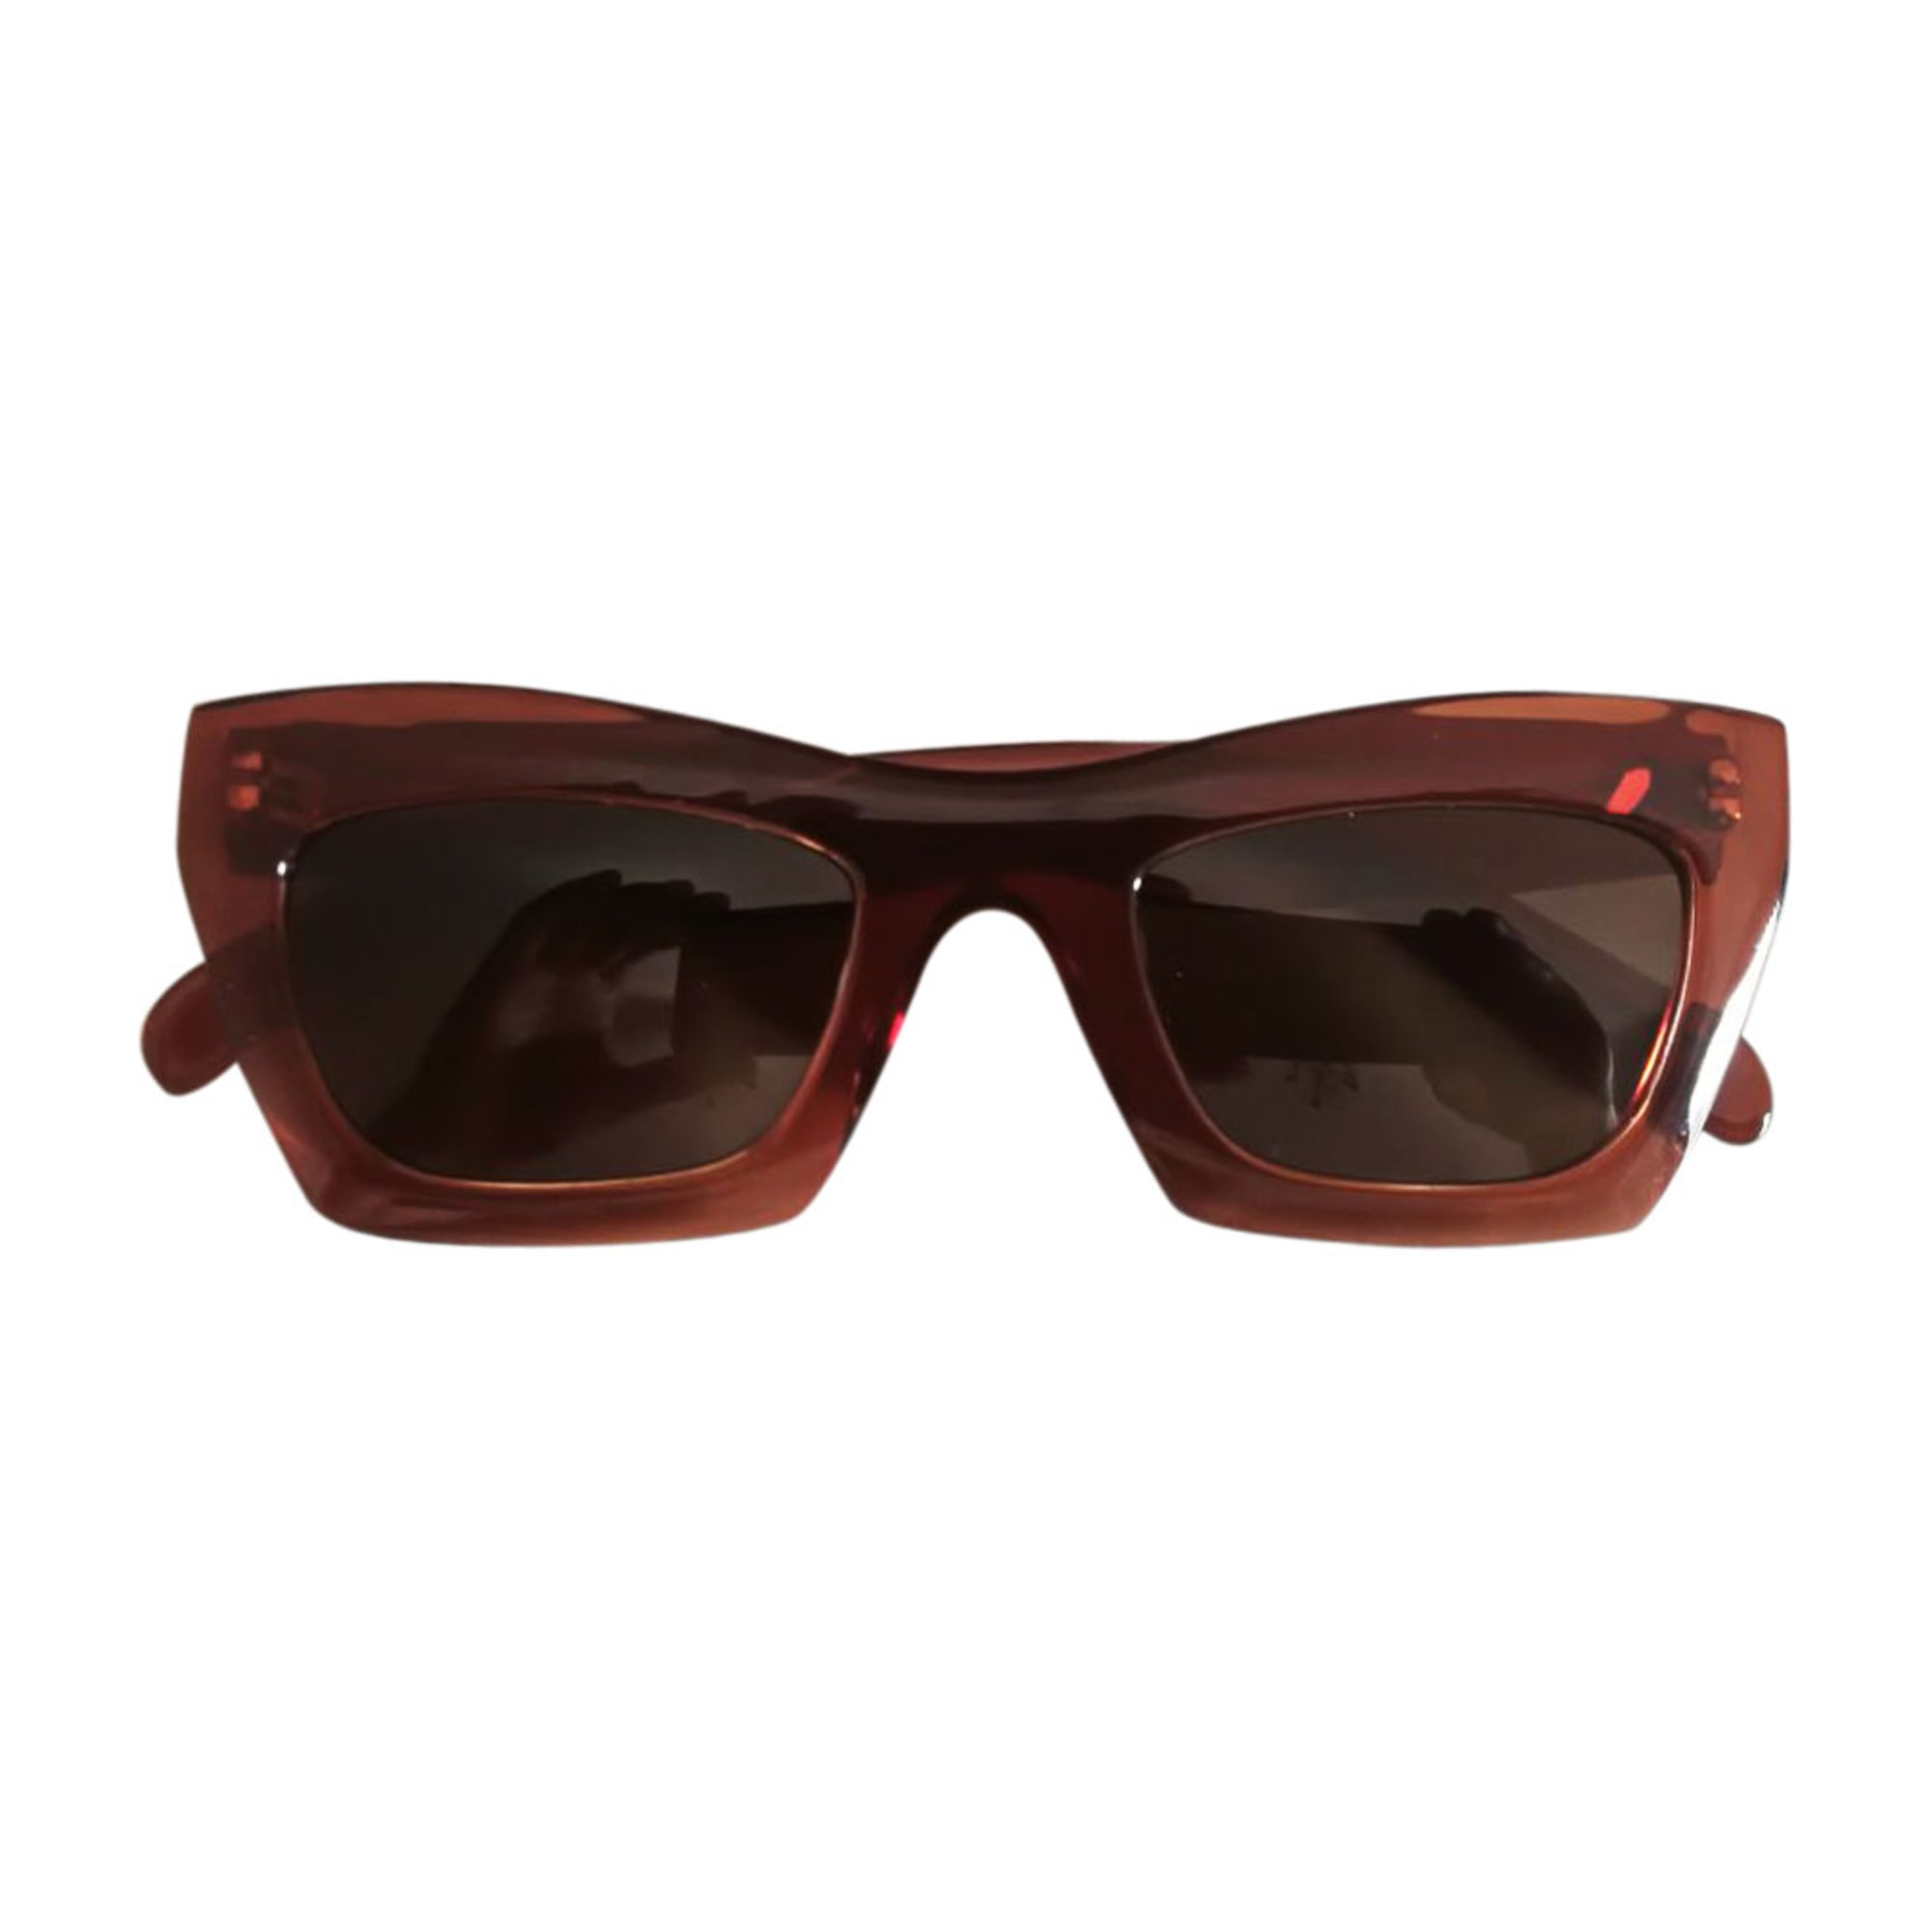 Sunglasses CÉLINE Golden, bronze, copper